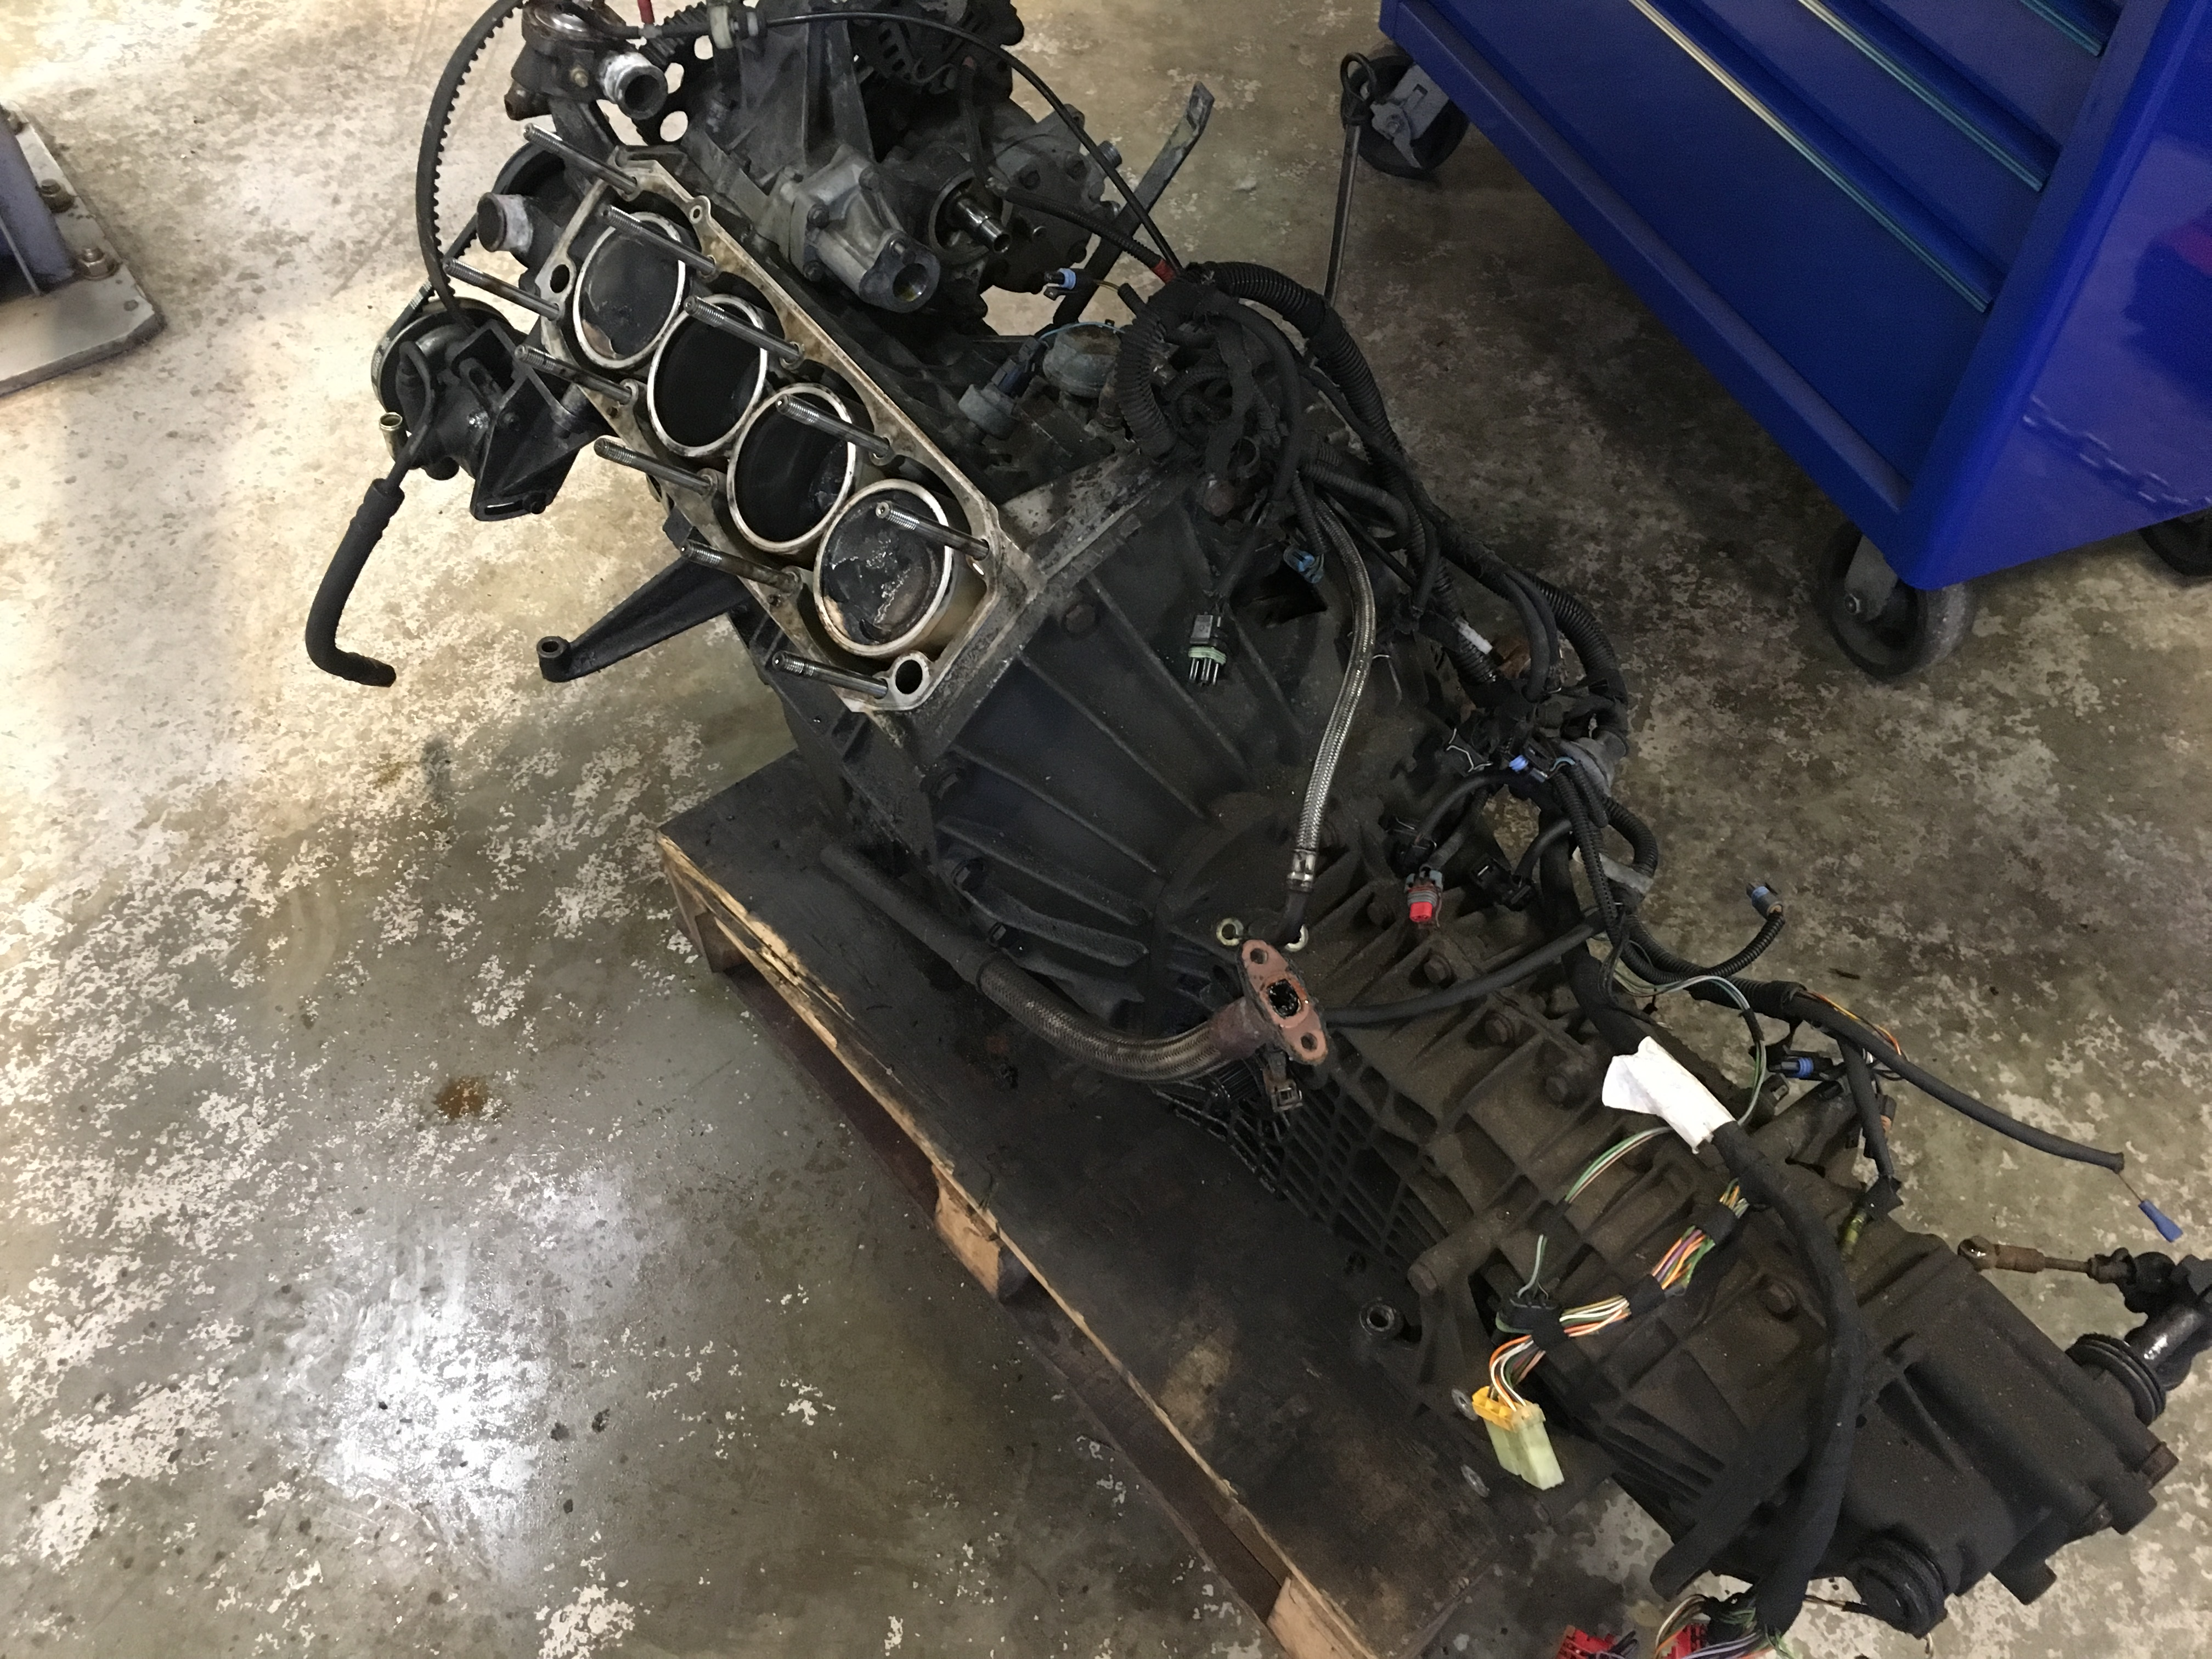 Lotus Esprit 4 Cylinder 900 series engine being stripped down  to carry out nessasary repairs